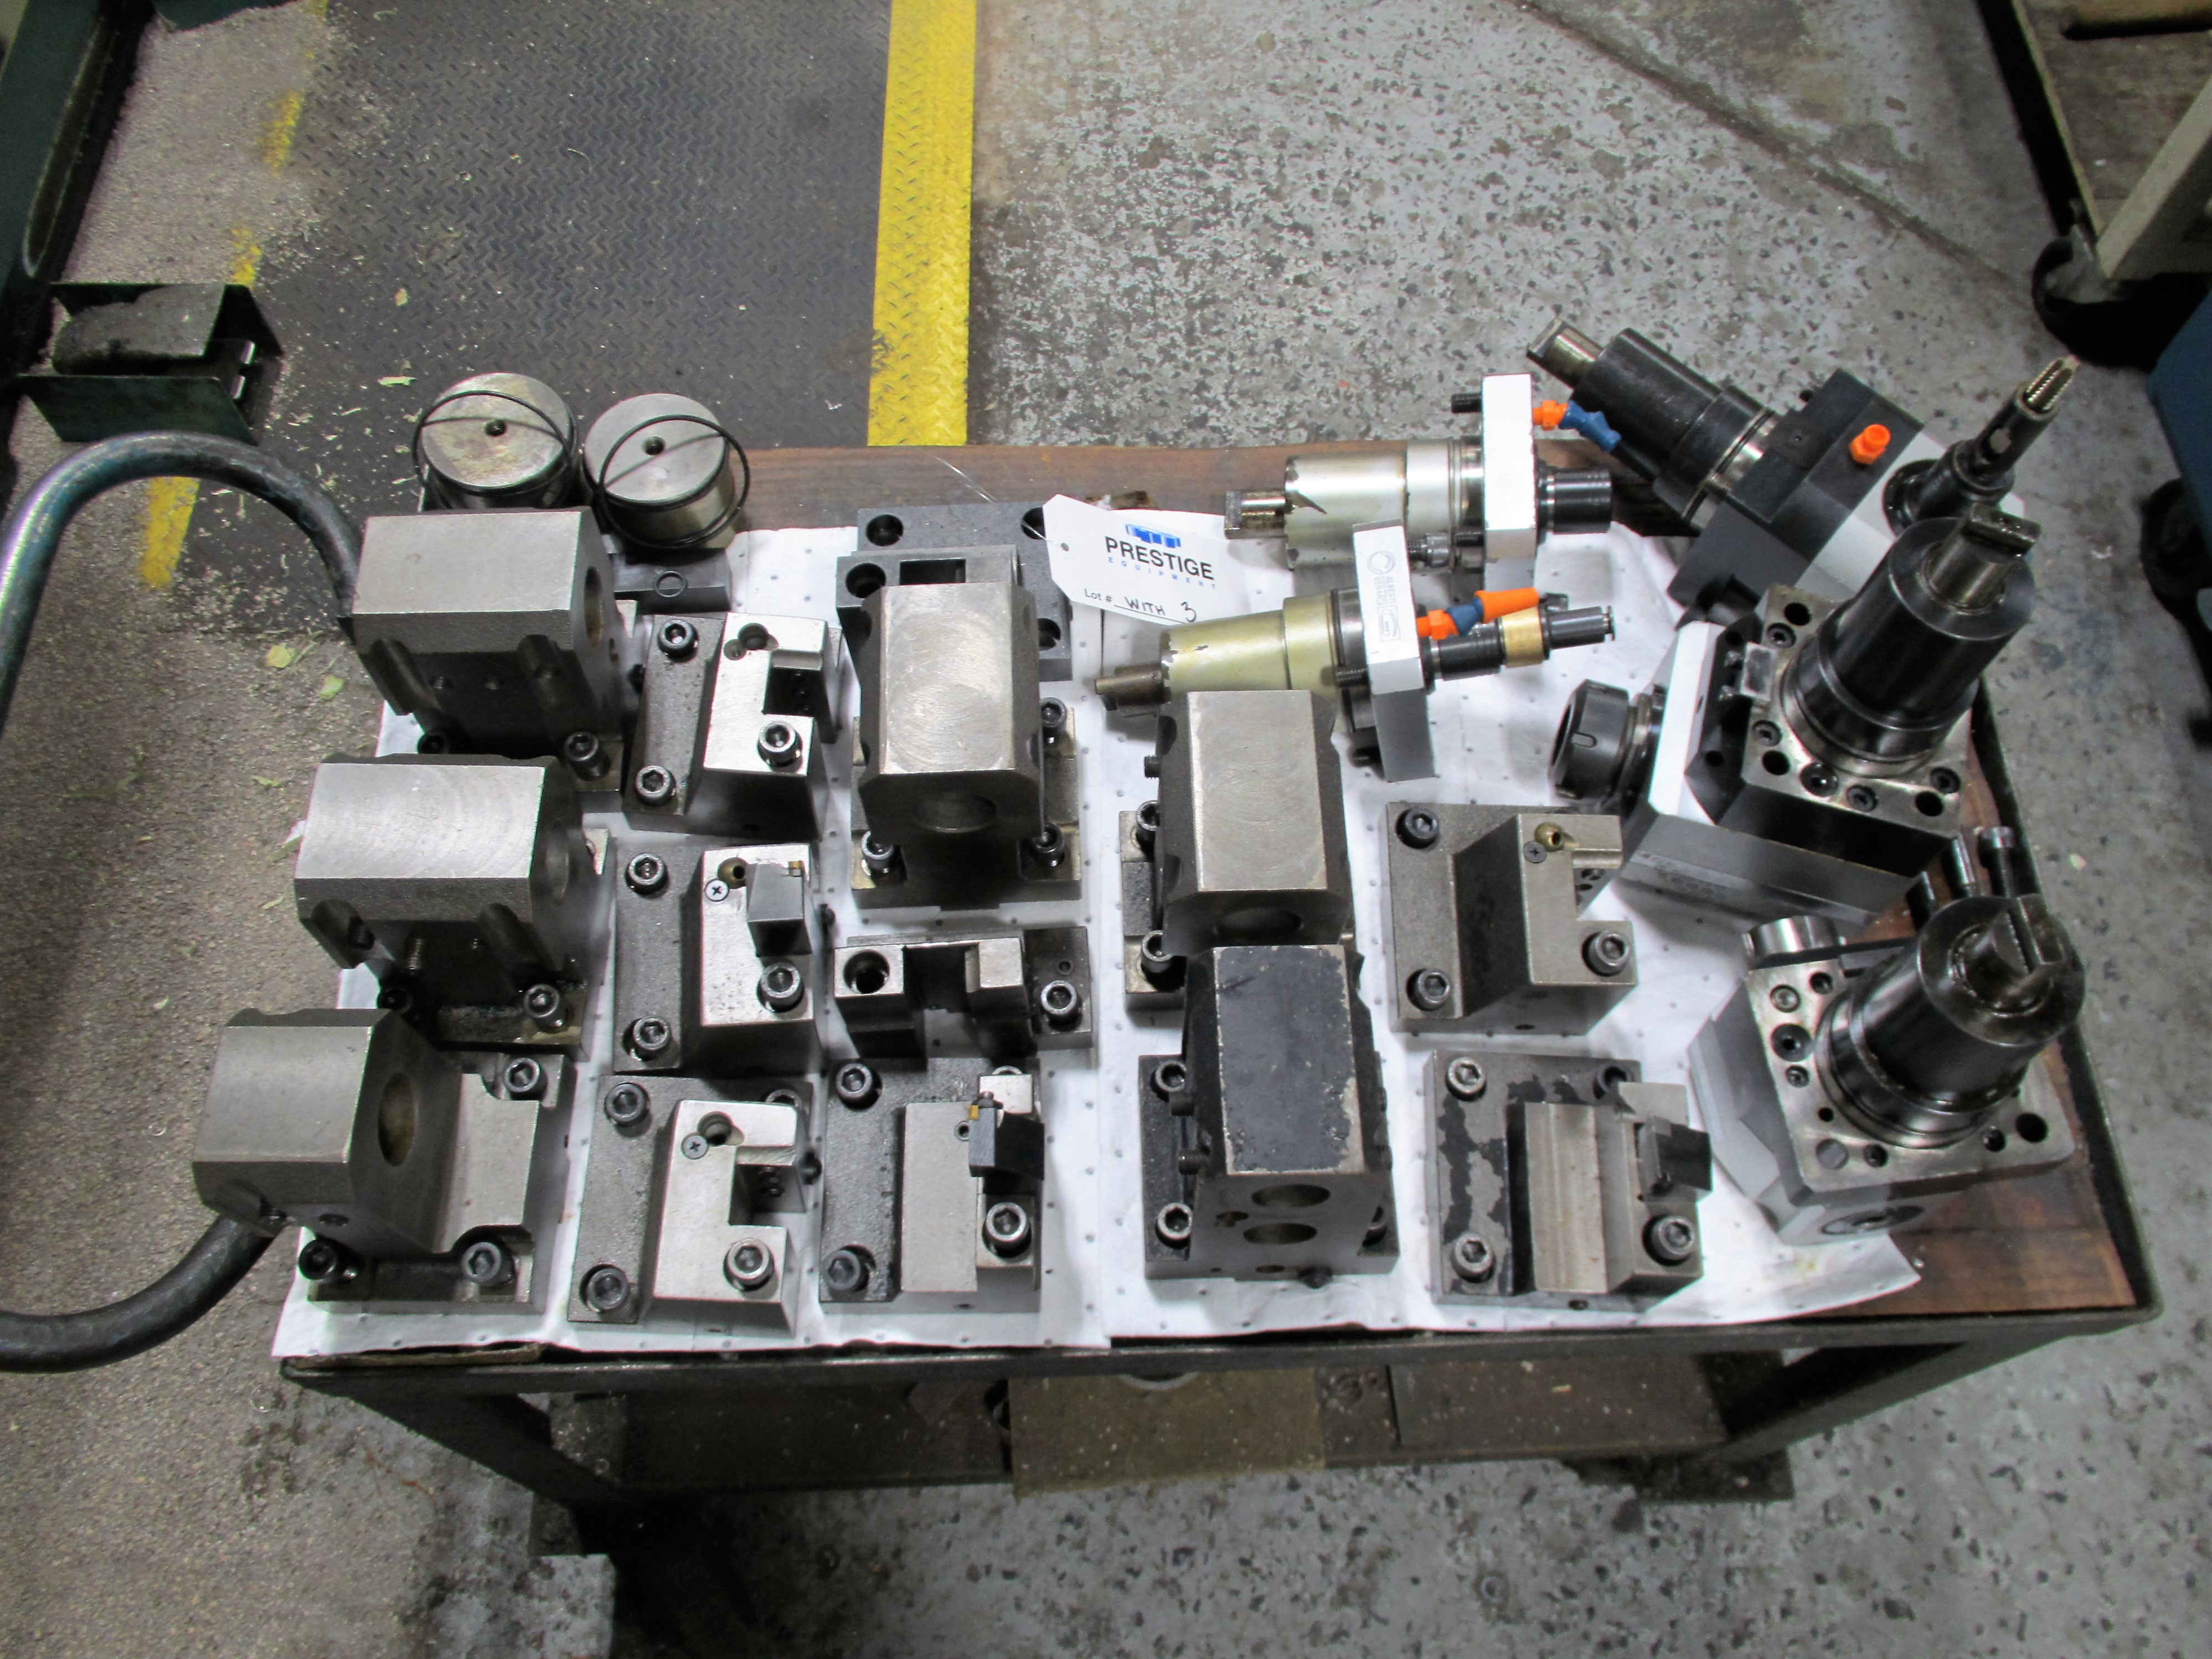 NAKAMURA TOME TW-30MM 7-AXIS CNC TWIN SPINDLE TURNING CENTER - Image 18 of 21